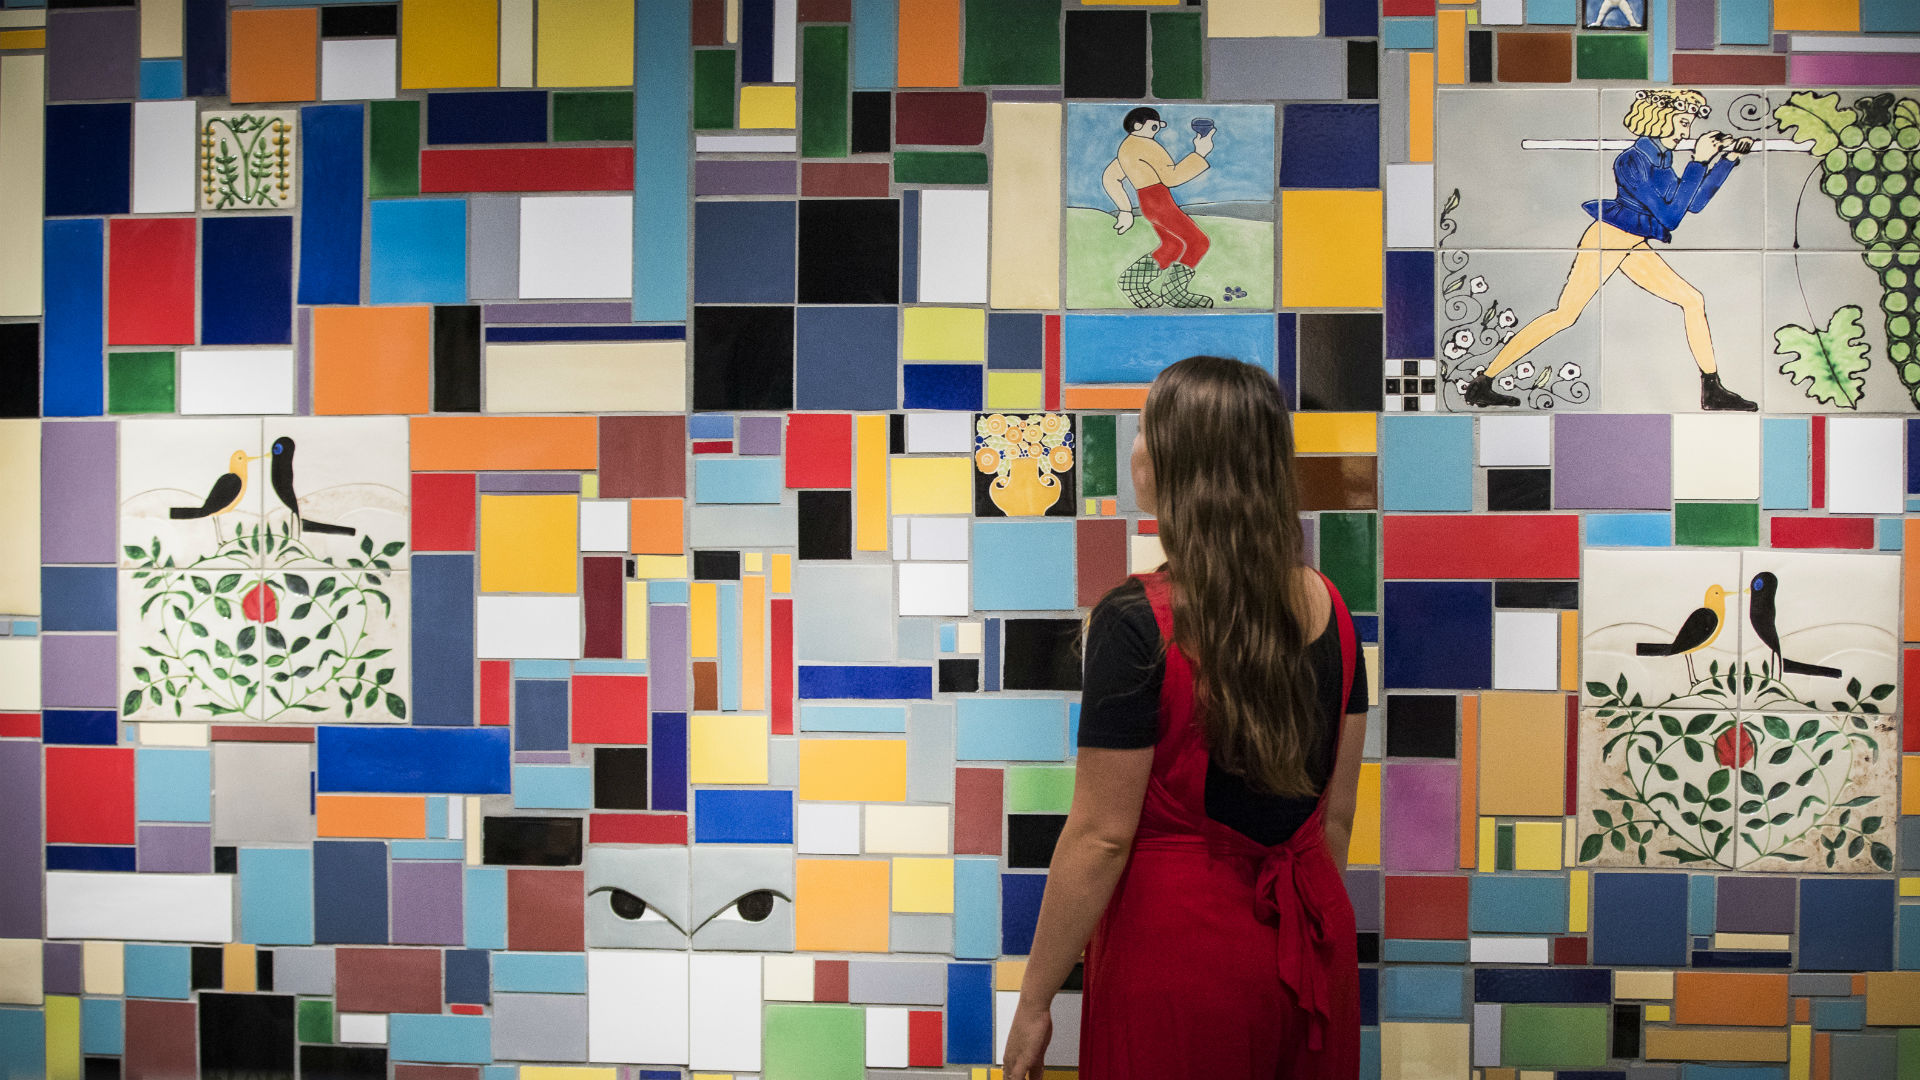 A girl looking at the colourful artworks during the Into The Night: Cabarets And Clubs In Modern Art exhibition.